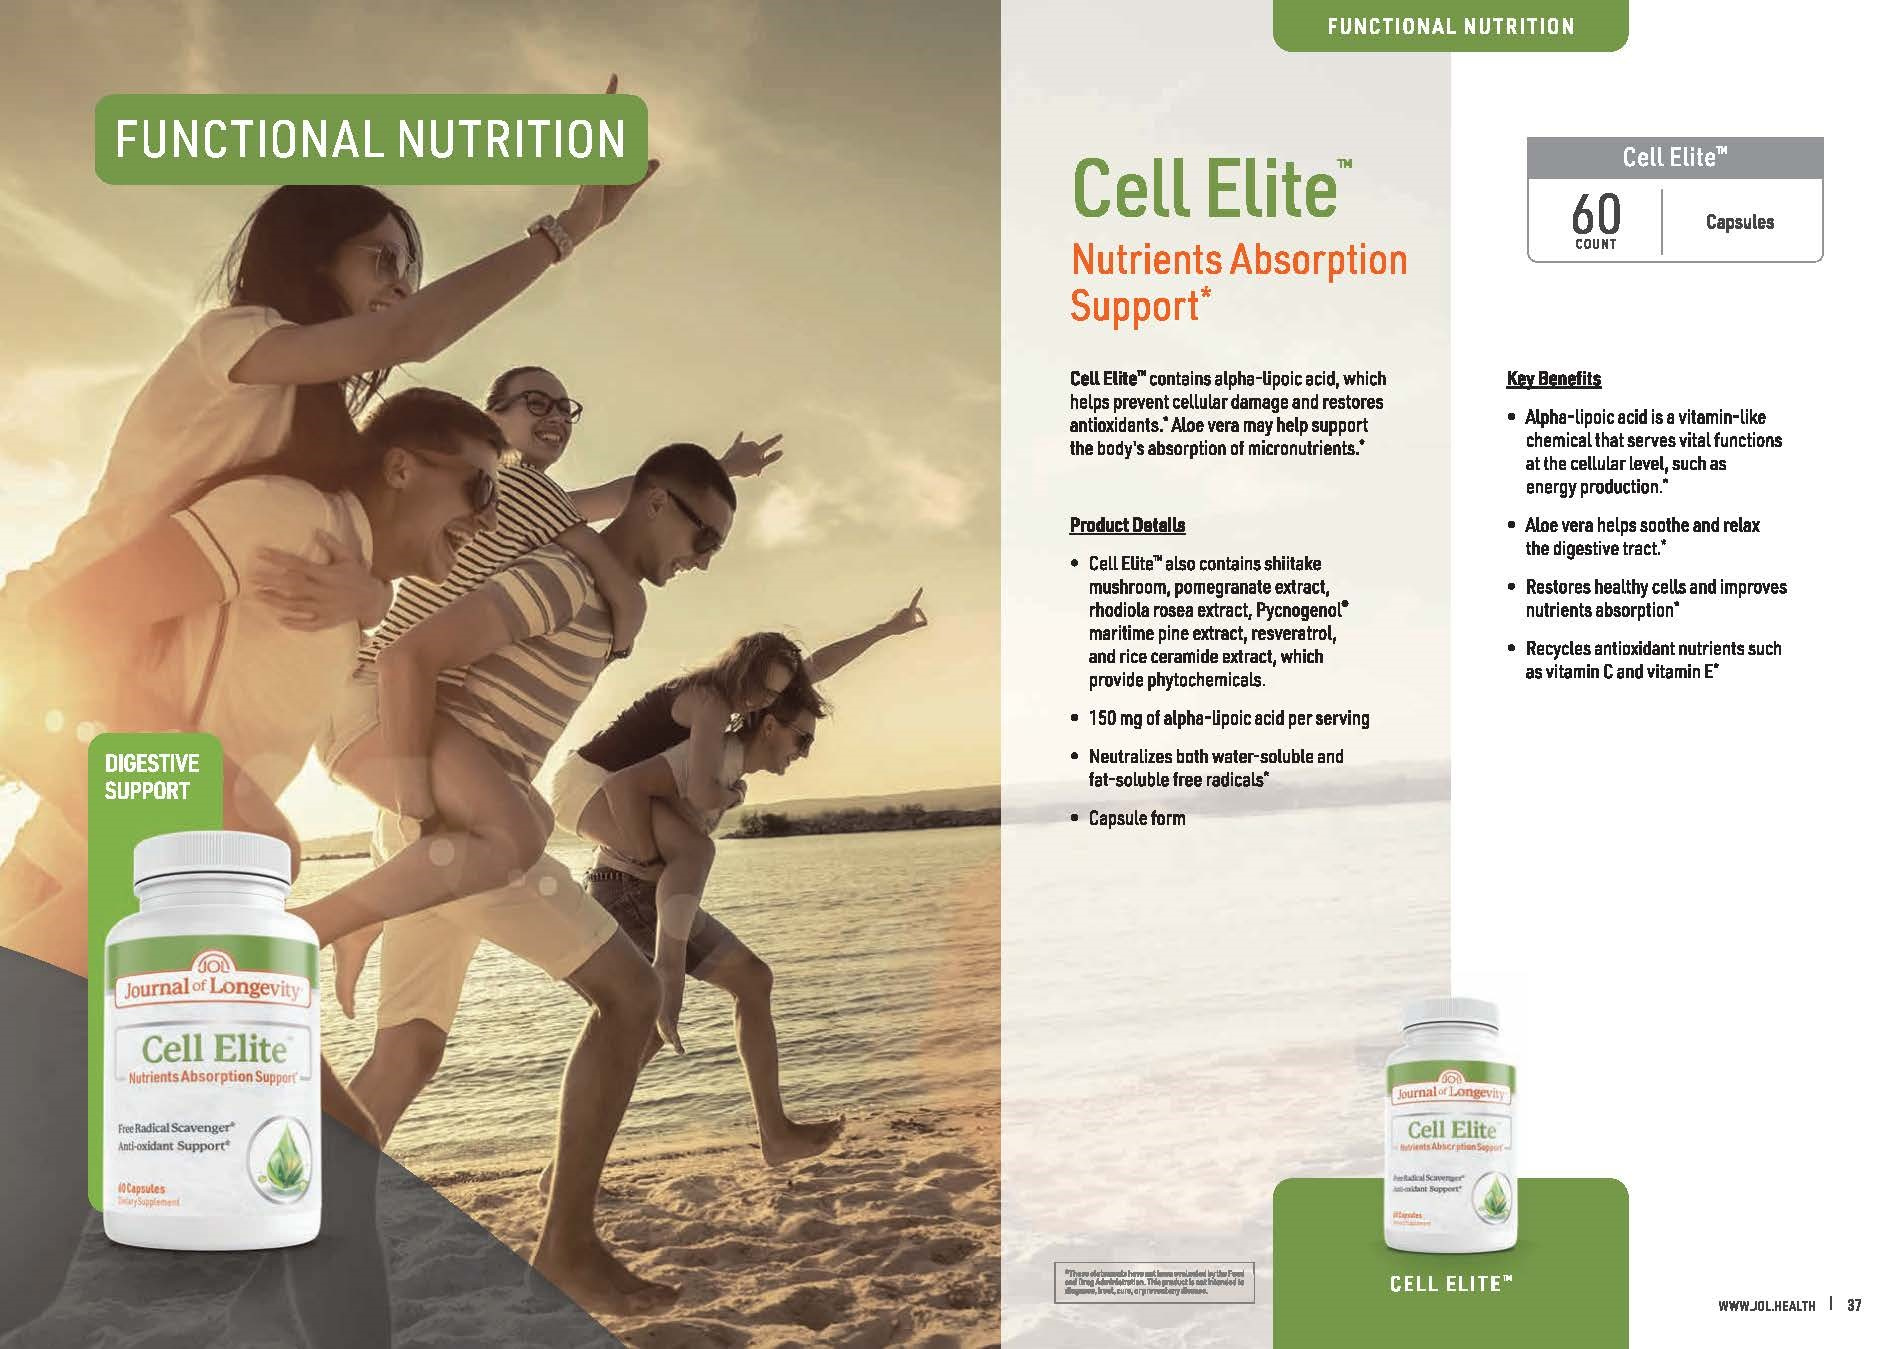 Journal of Longevity Cell Elite With Alpha Lipoic Acid For Cellular Damage Support Antioxidants and Nutrients Aborption